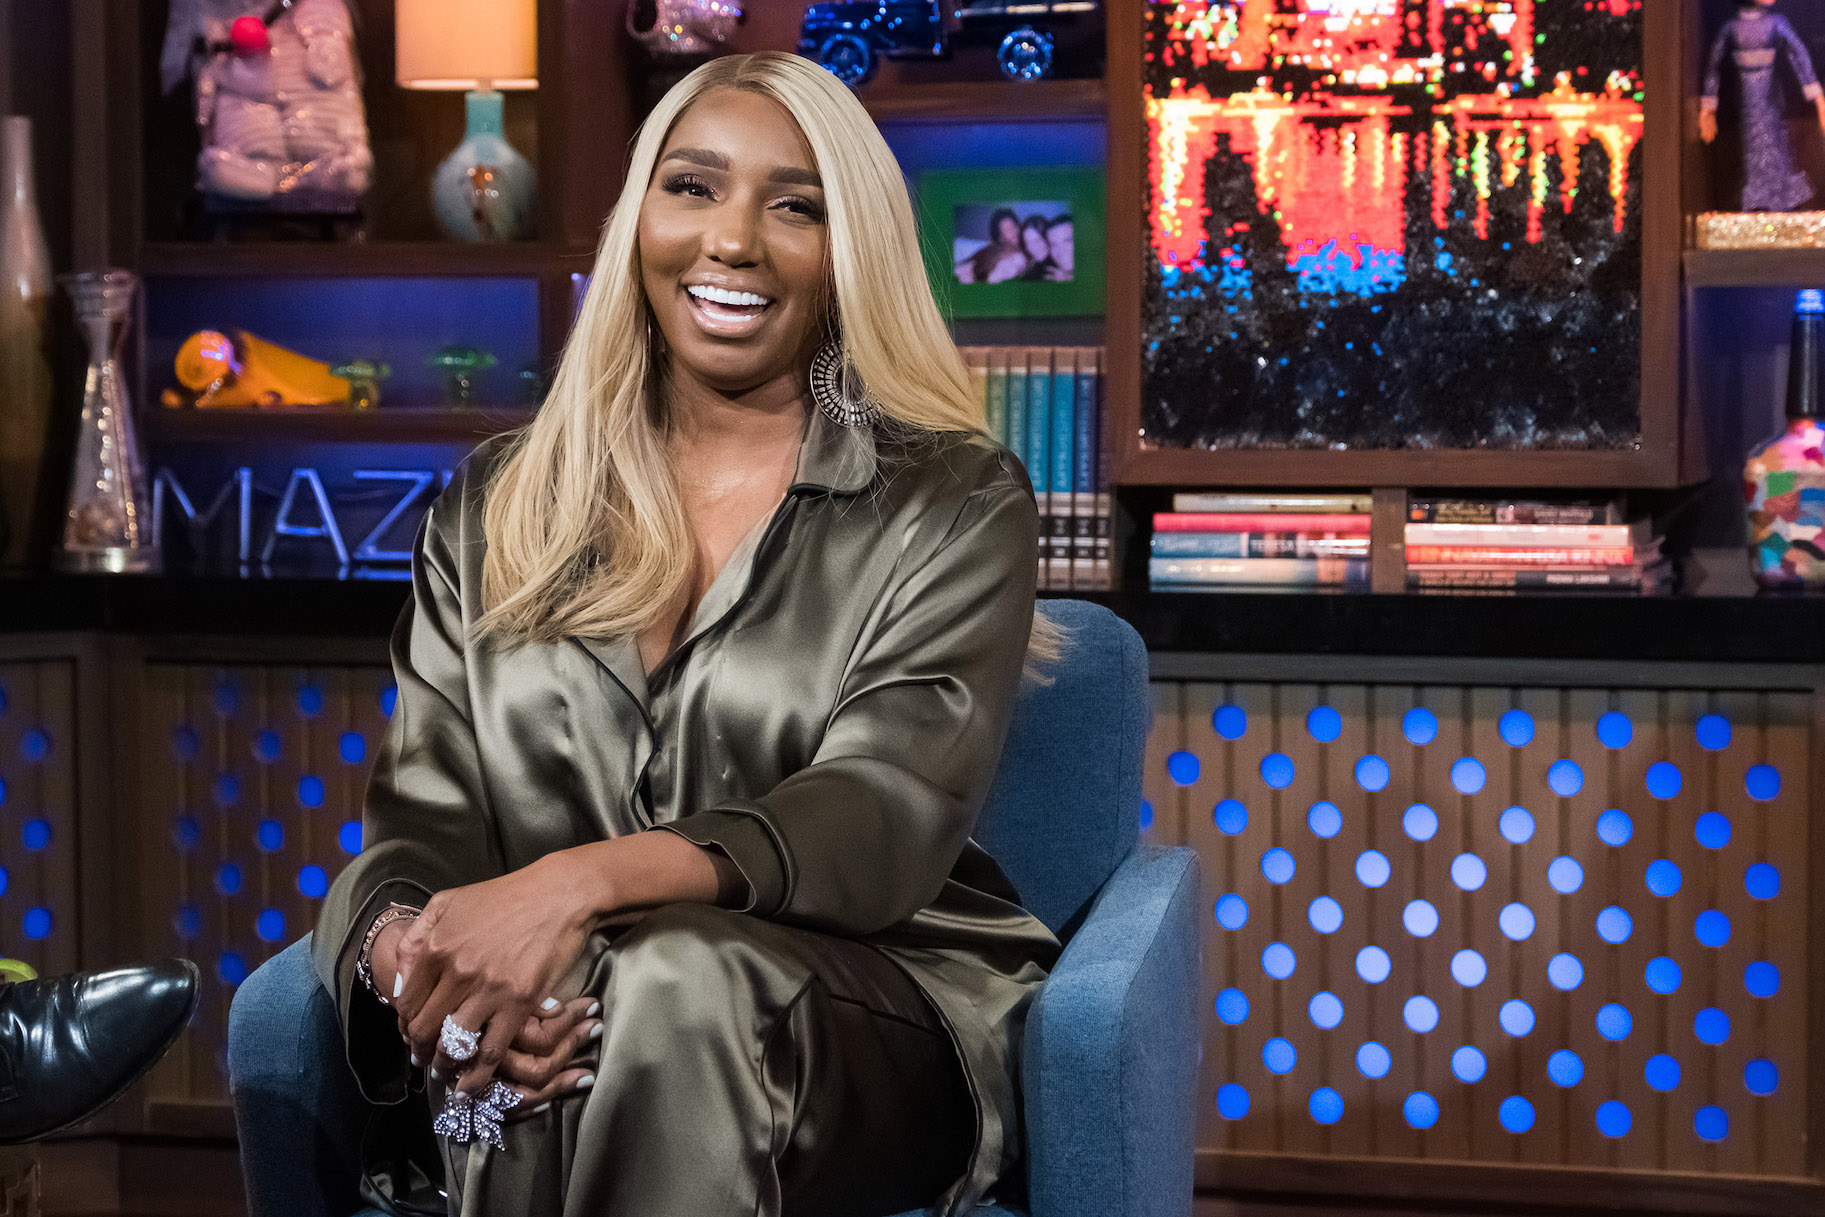 NeNe Leakes Invites Fans To Check Out Her Closet Following Her Reaction On RHOA When Kandi Burruss And Porsha Williams Wanted To See It